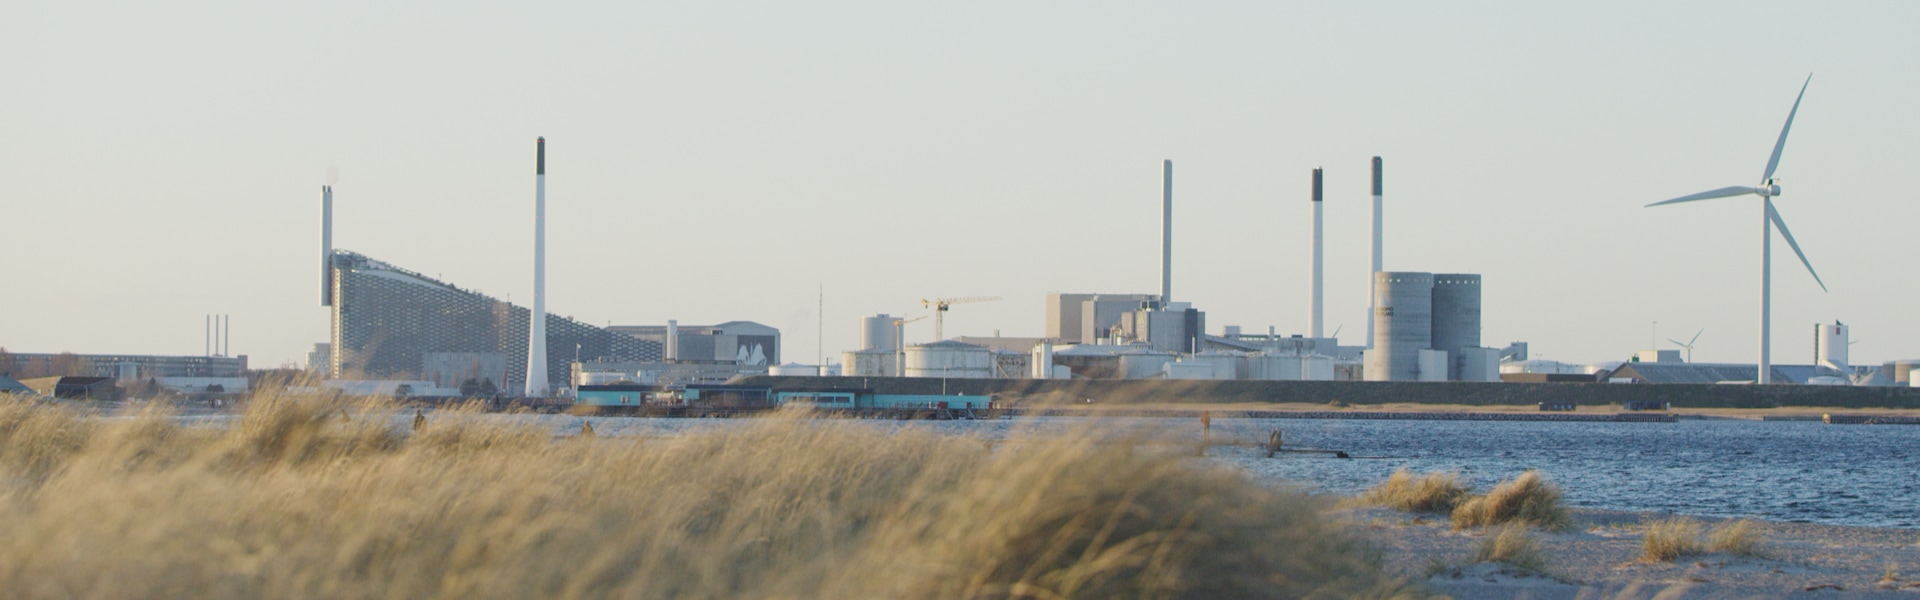 The Copenhagen waste-to-energy plant, Amager Bakke